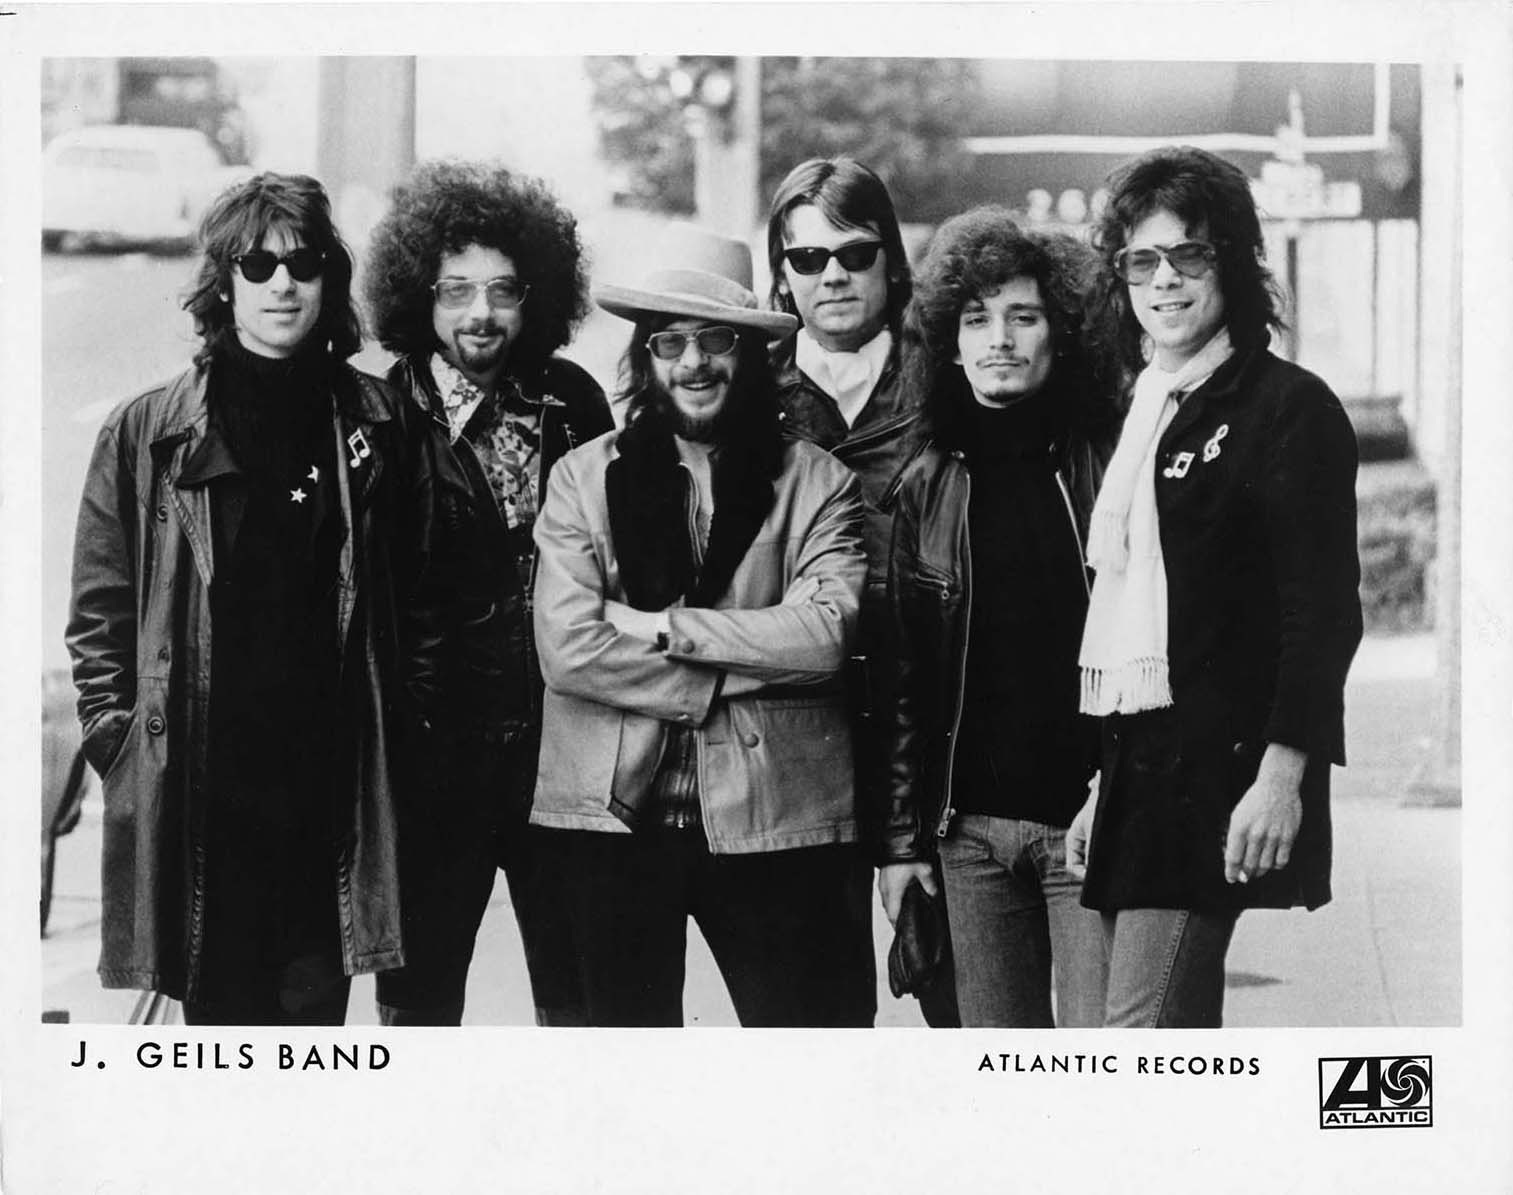 J. Geils Band promo photo